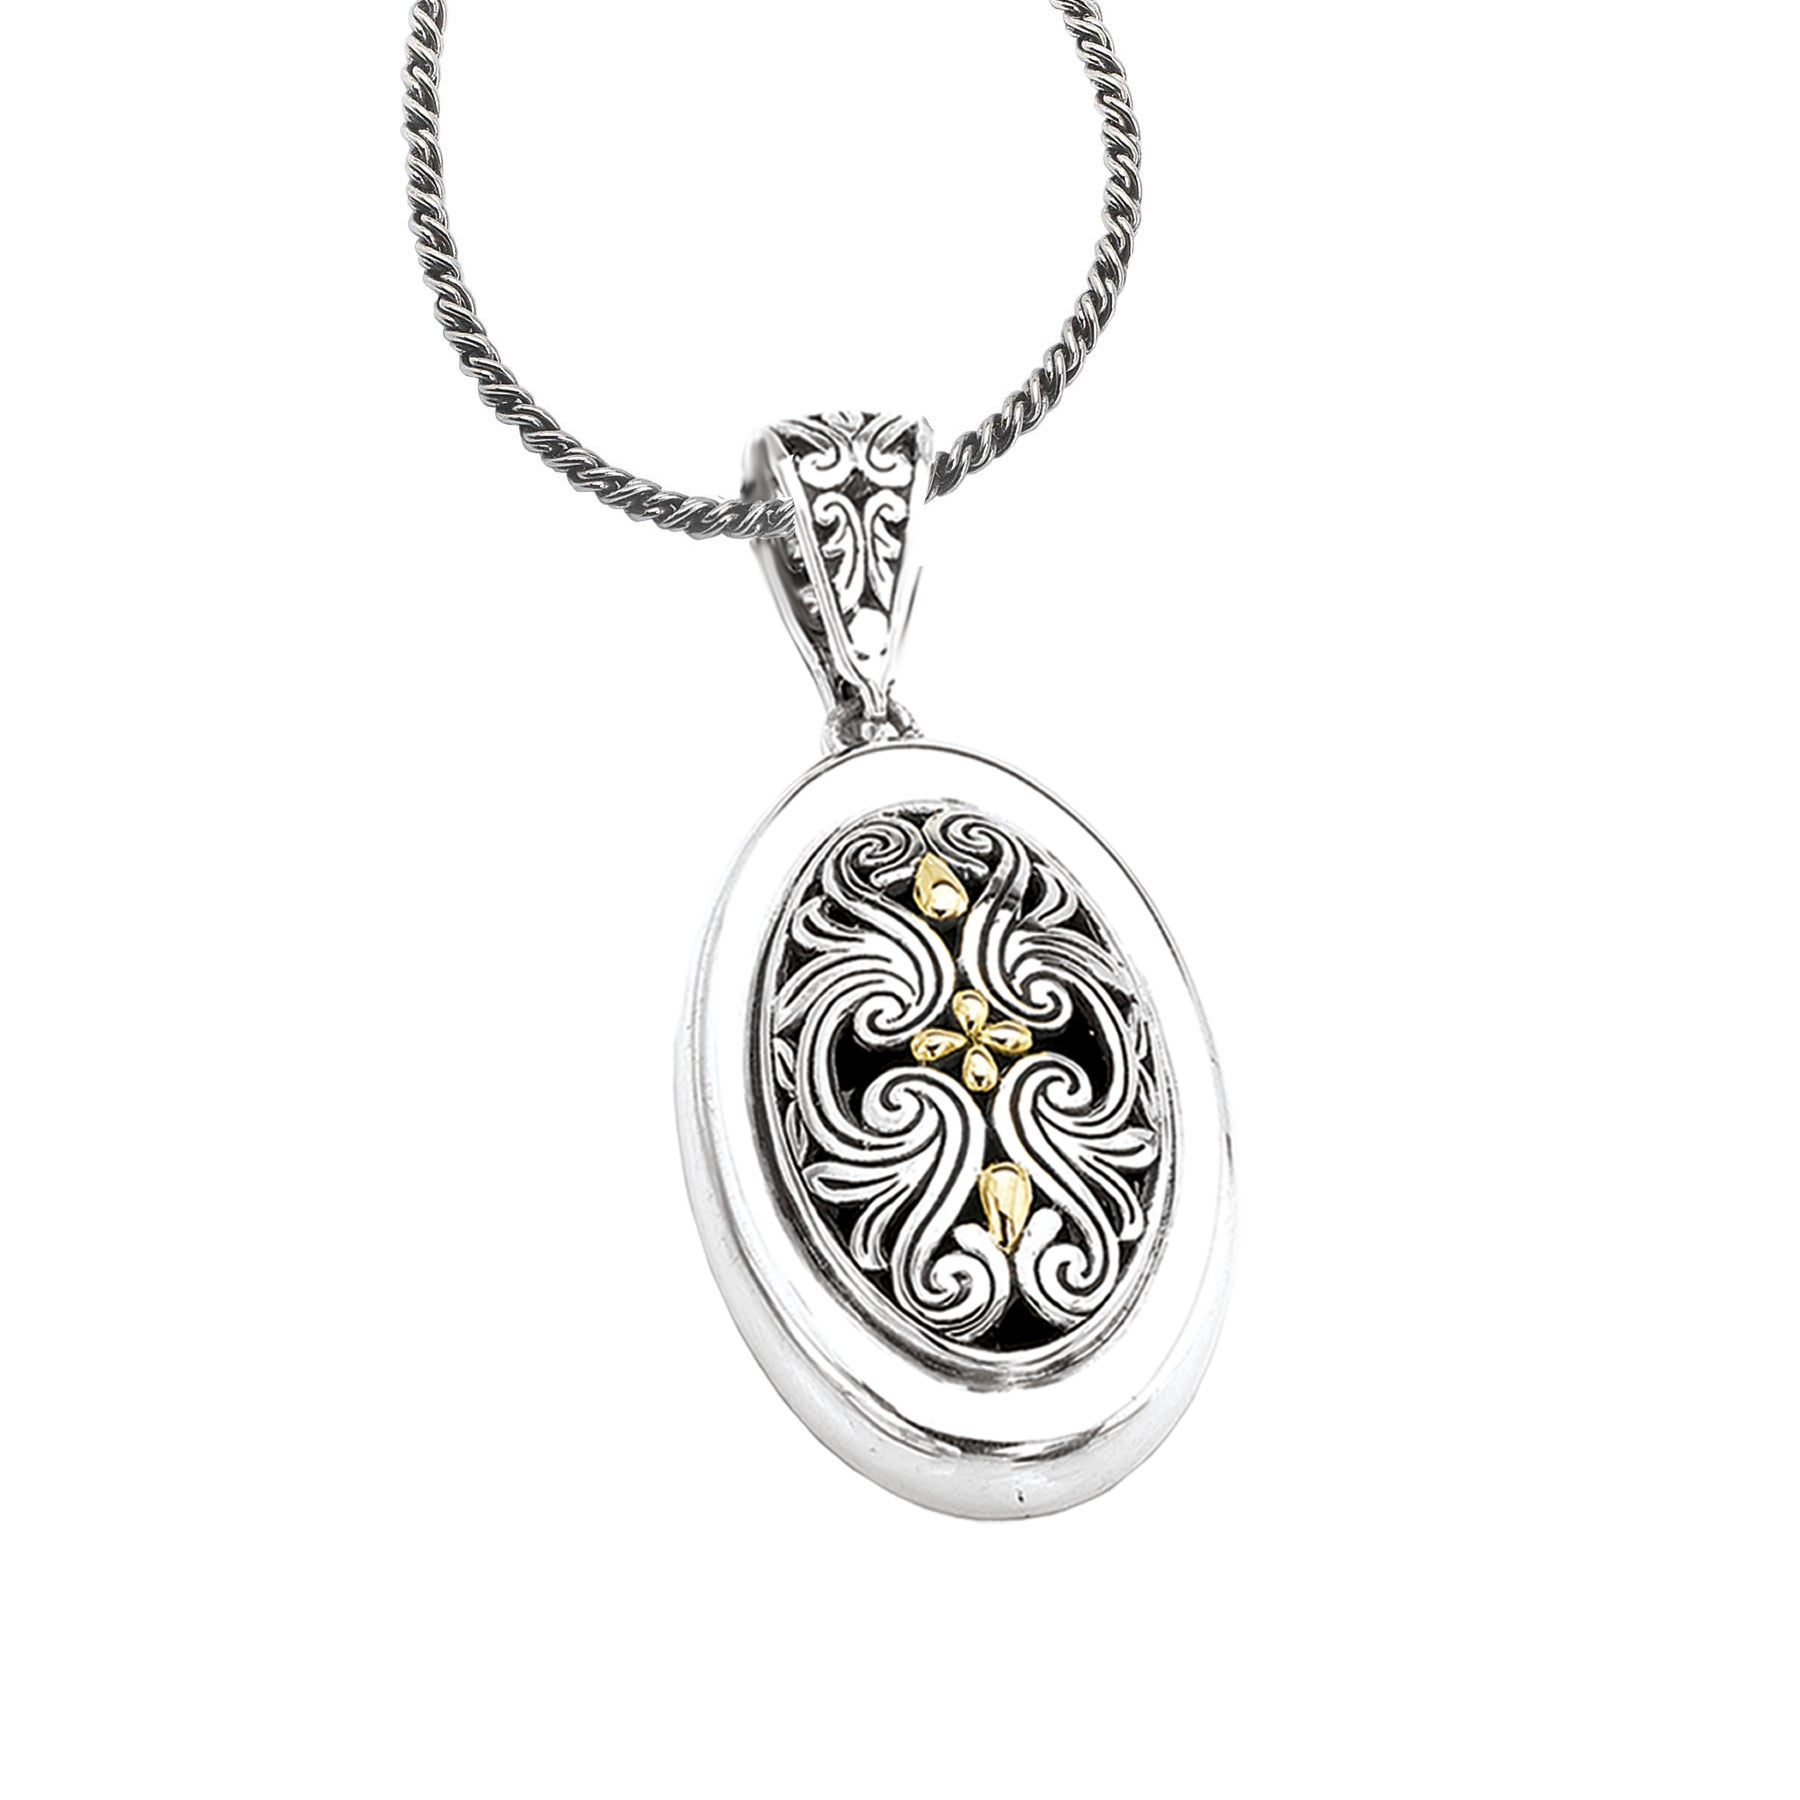 Sterling Silver and 18k Gold Oval Filigree Necklace